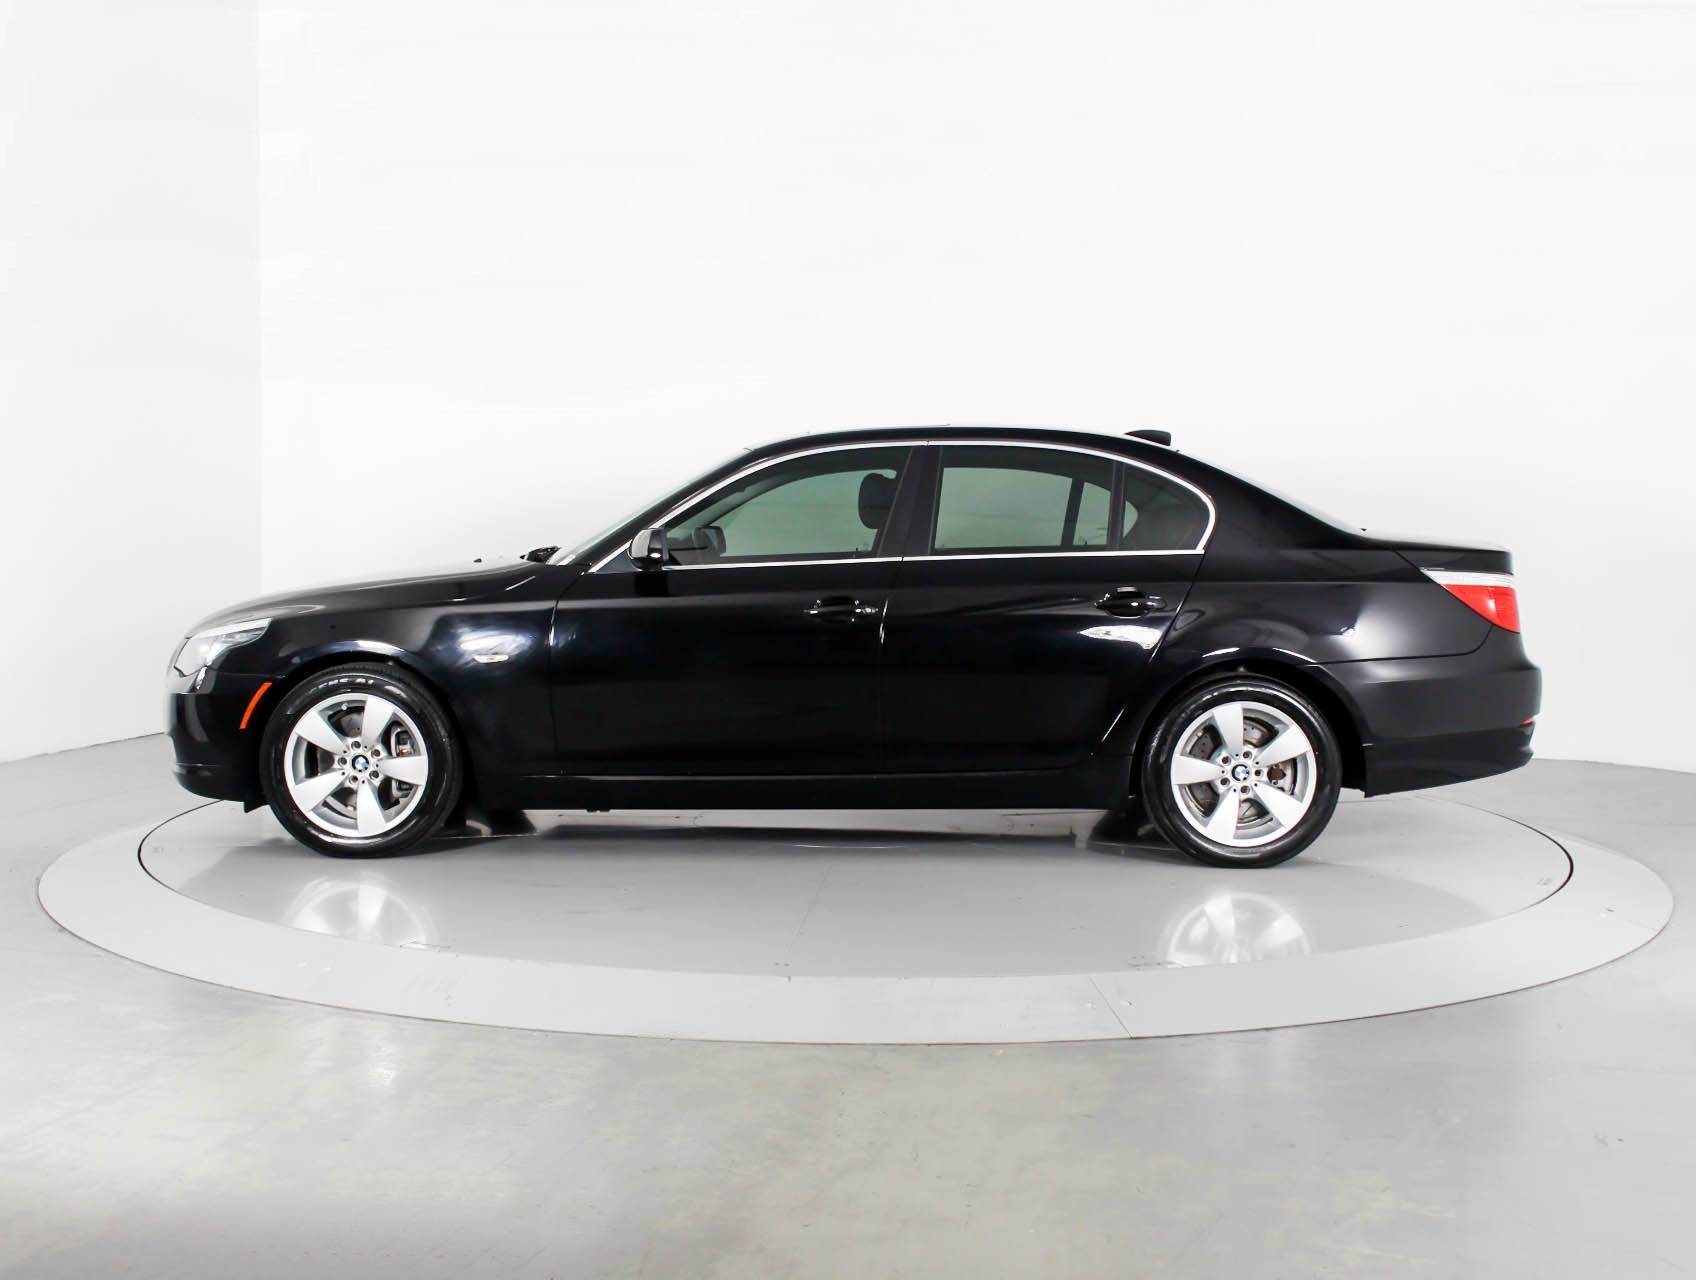 Used 2008 BMW 5 SERIES 528I Sedan for sale in WEST PALM FL